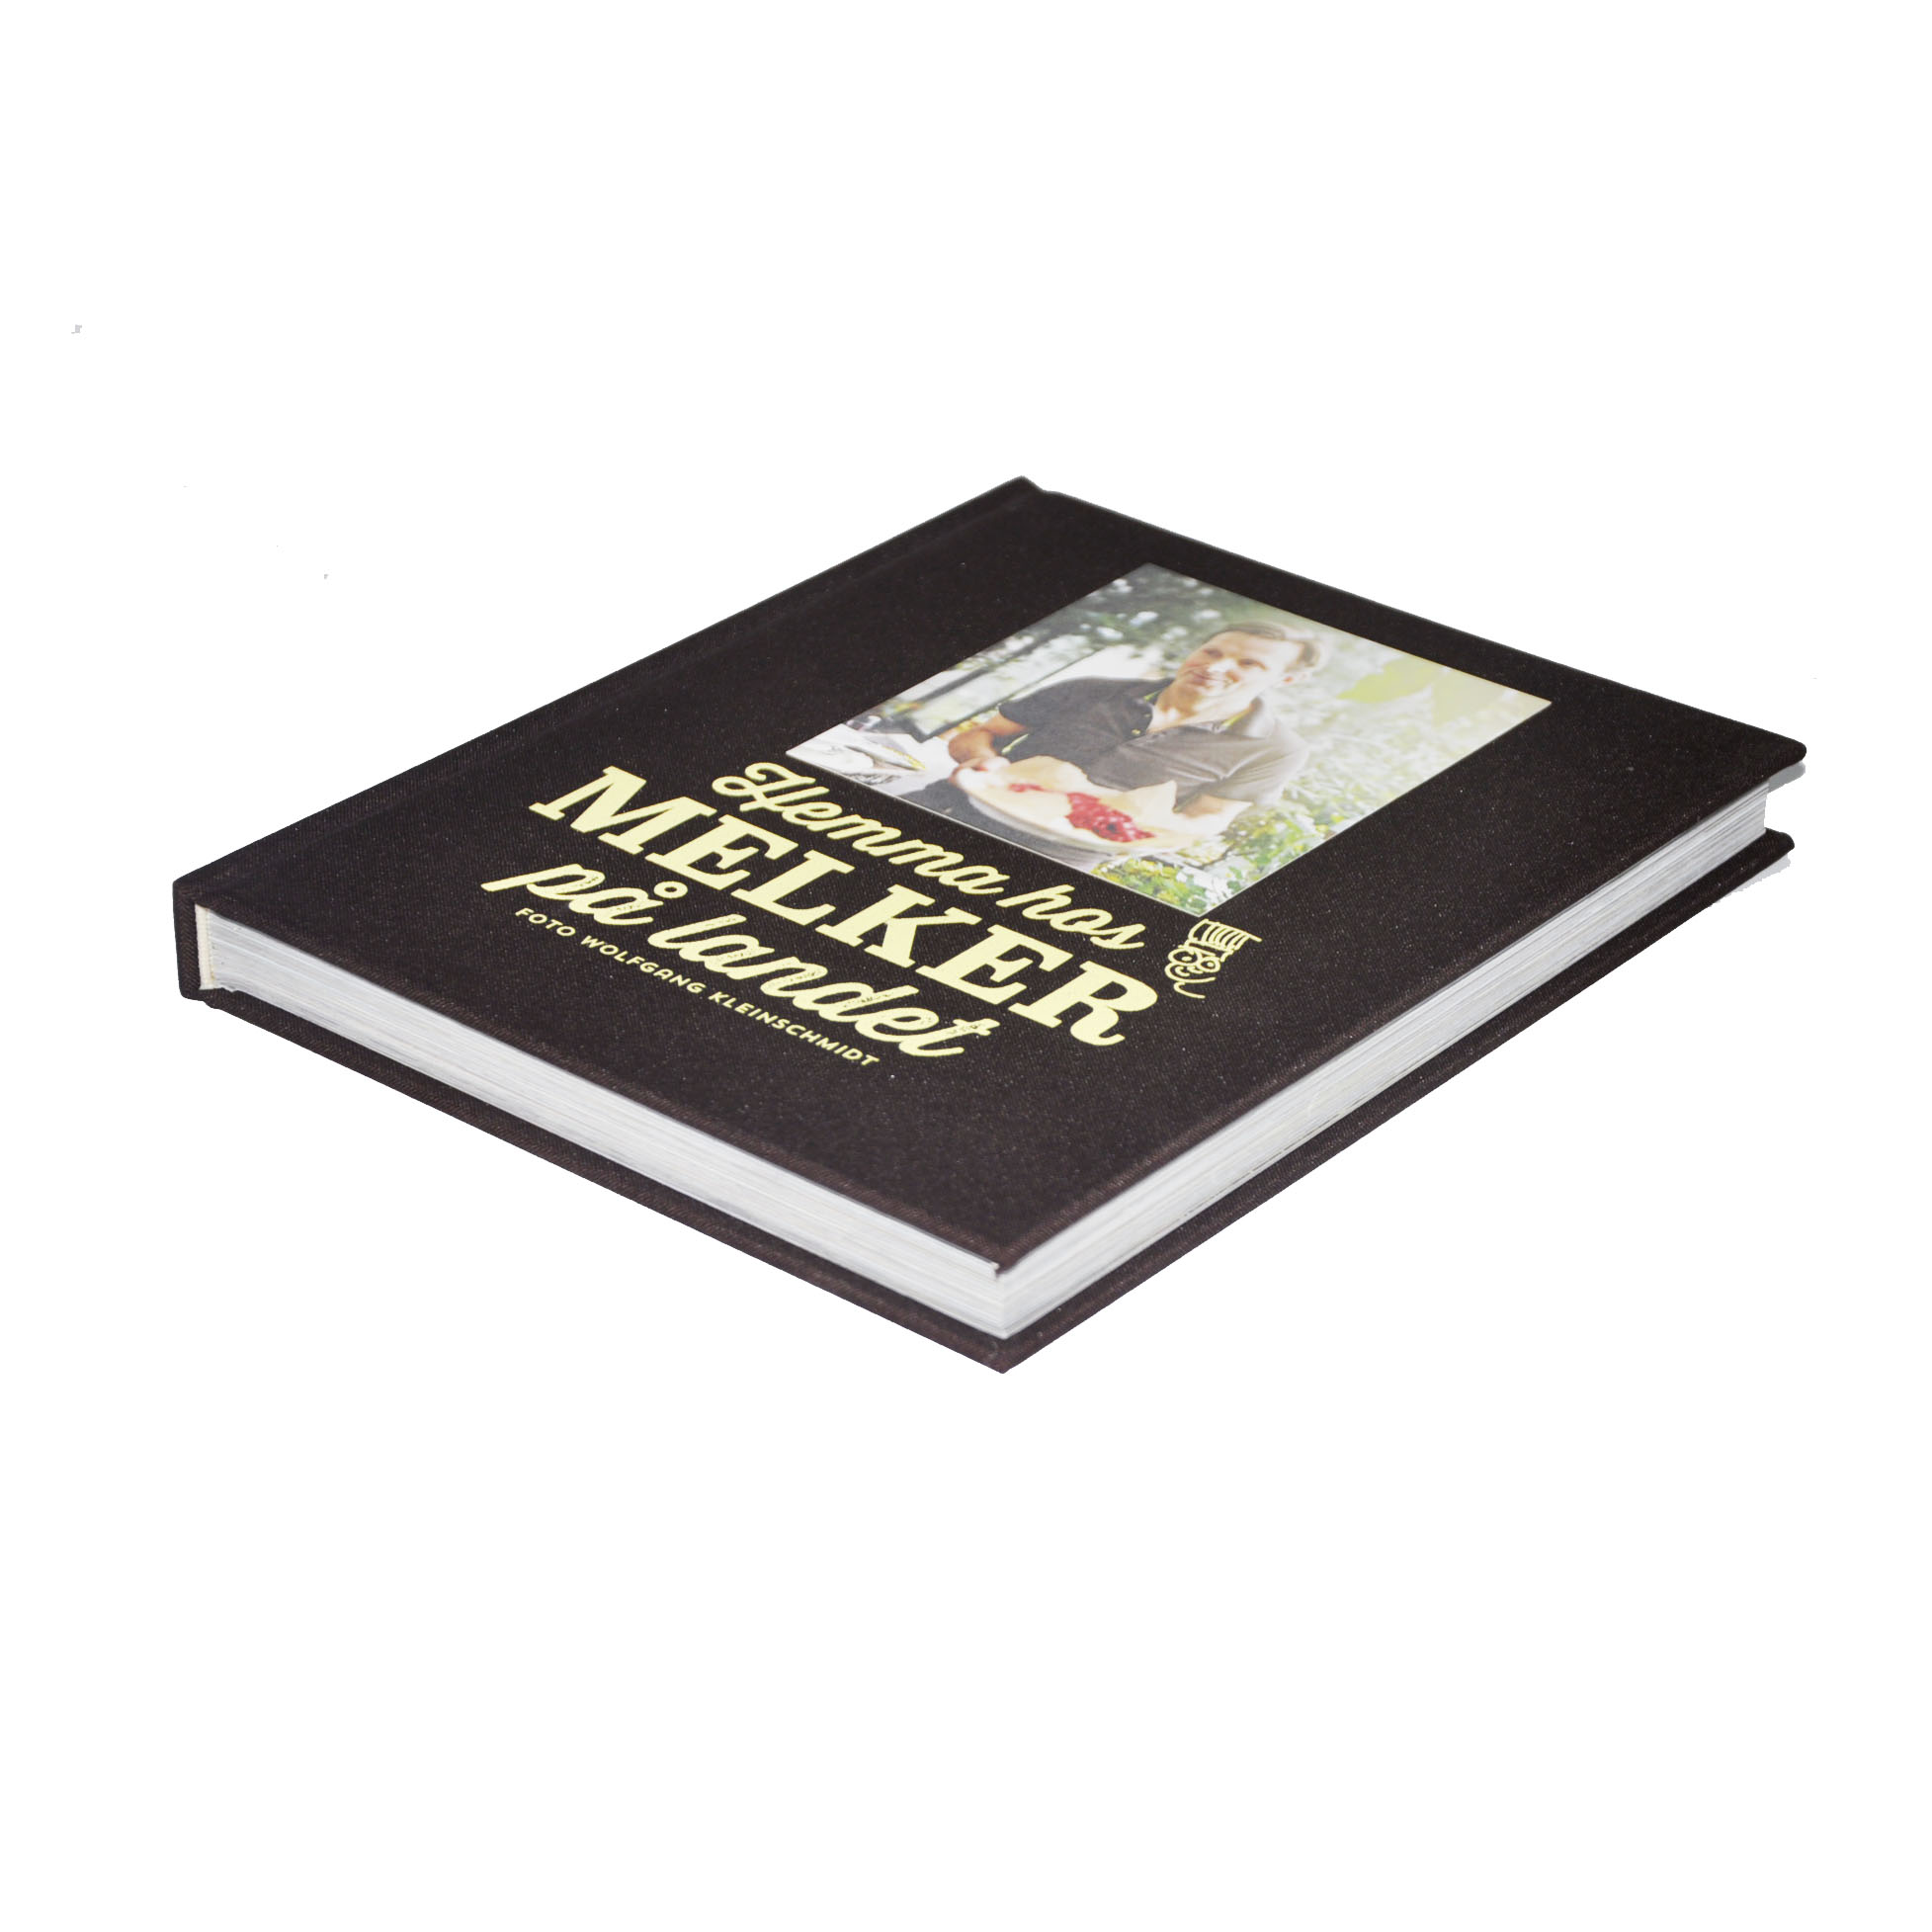 Custom-OEM-design-CMYK-color-hardcover-printing (3)